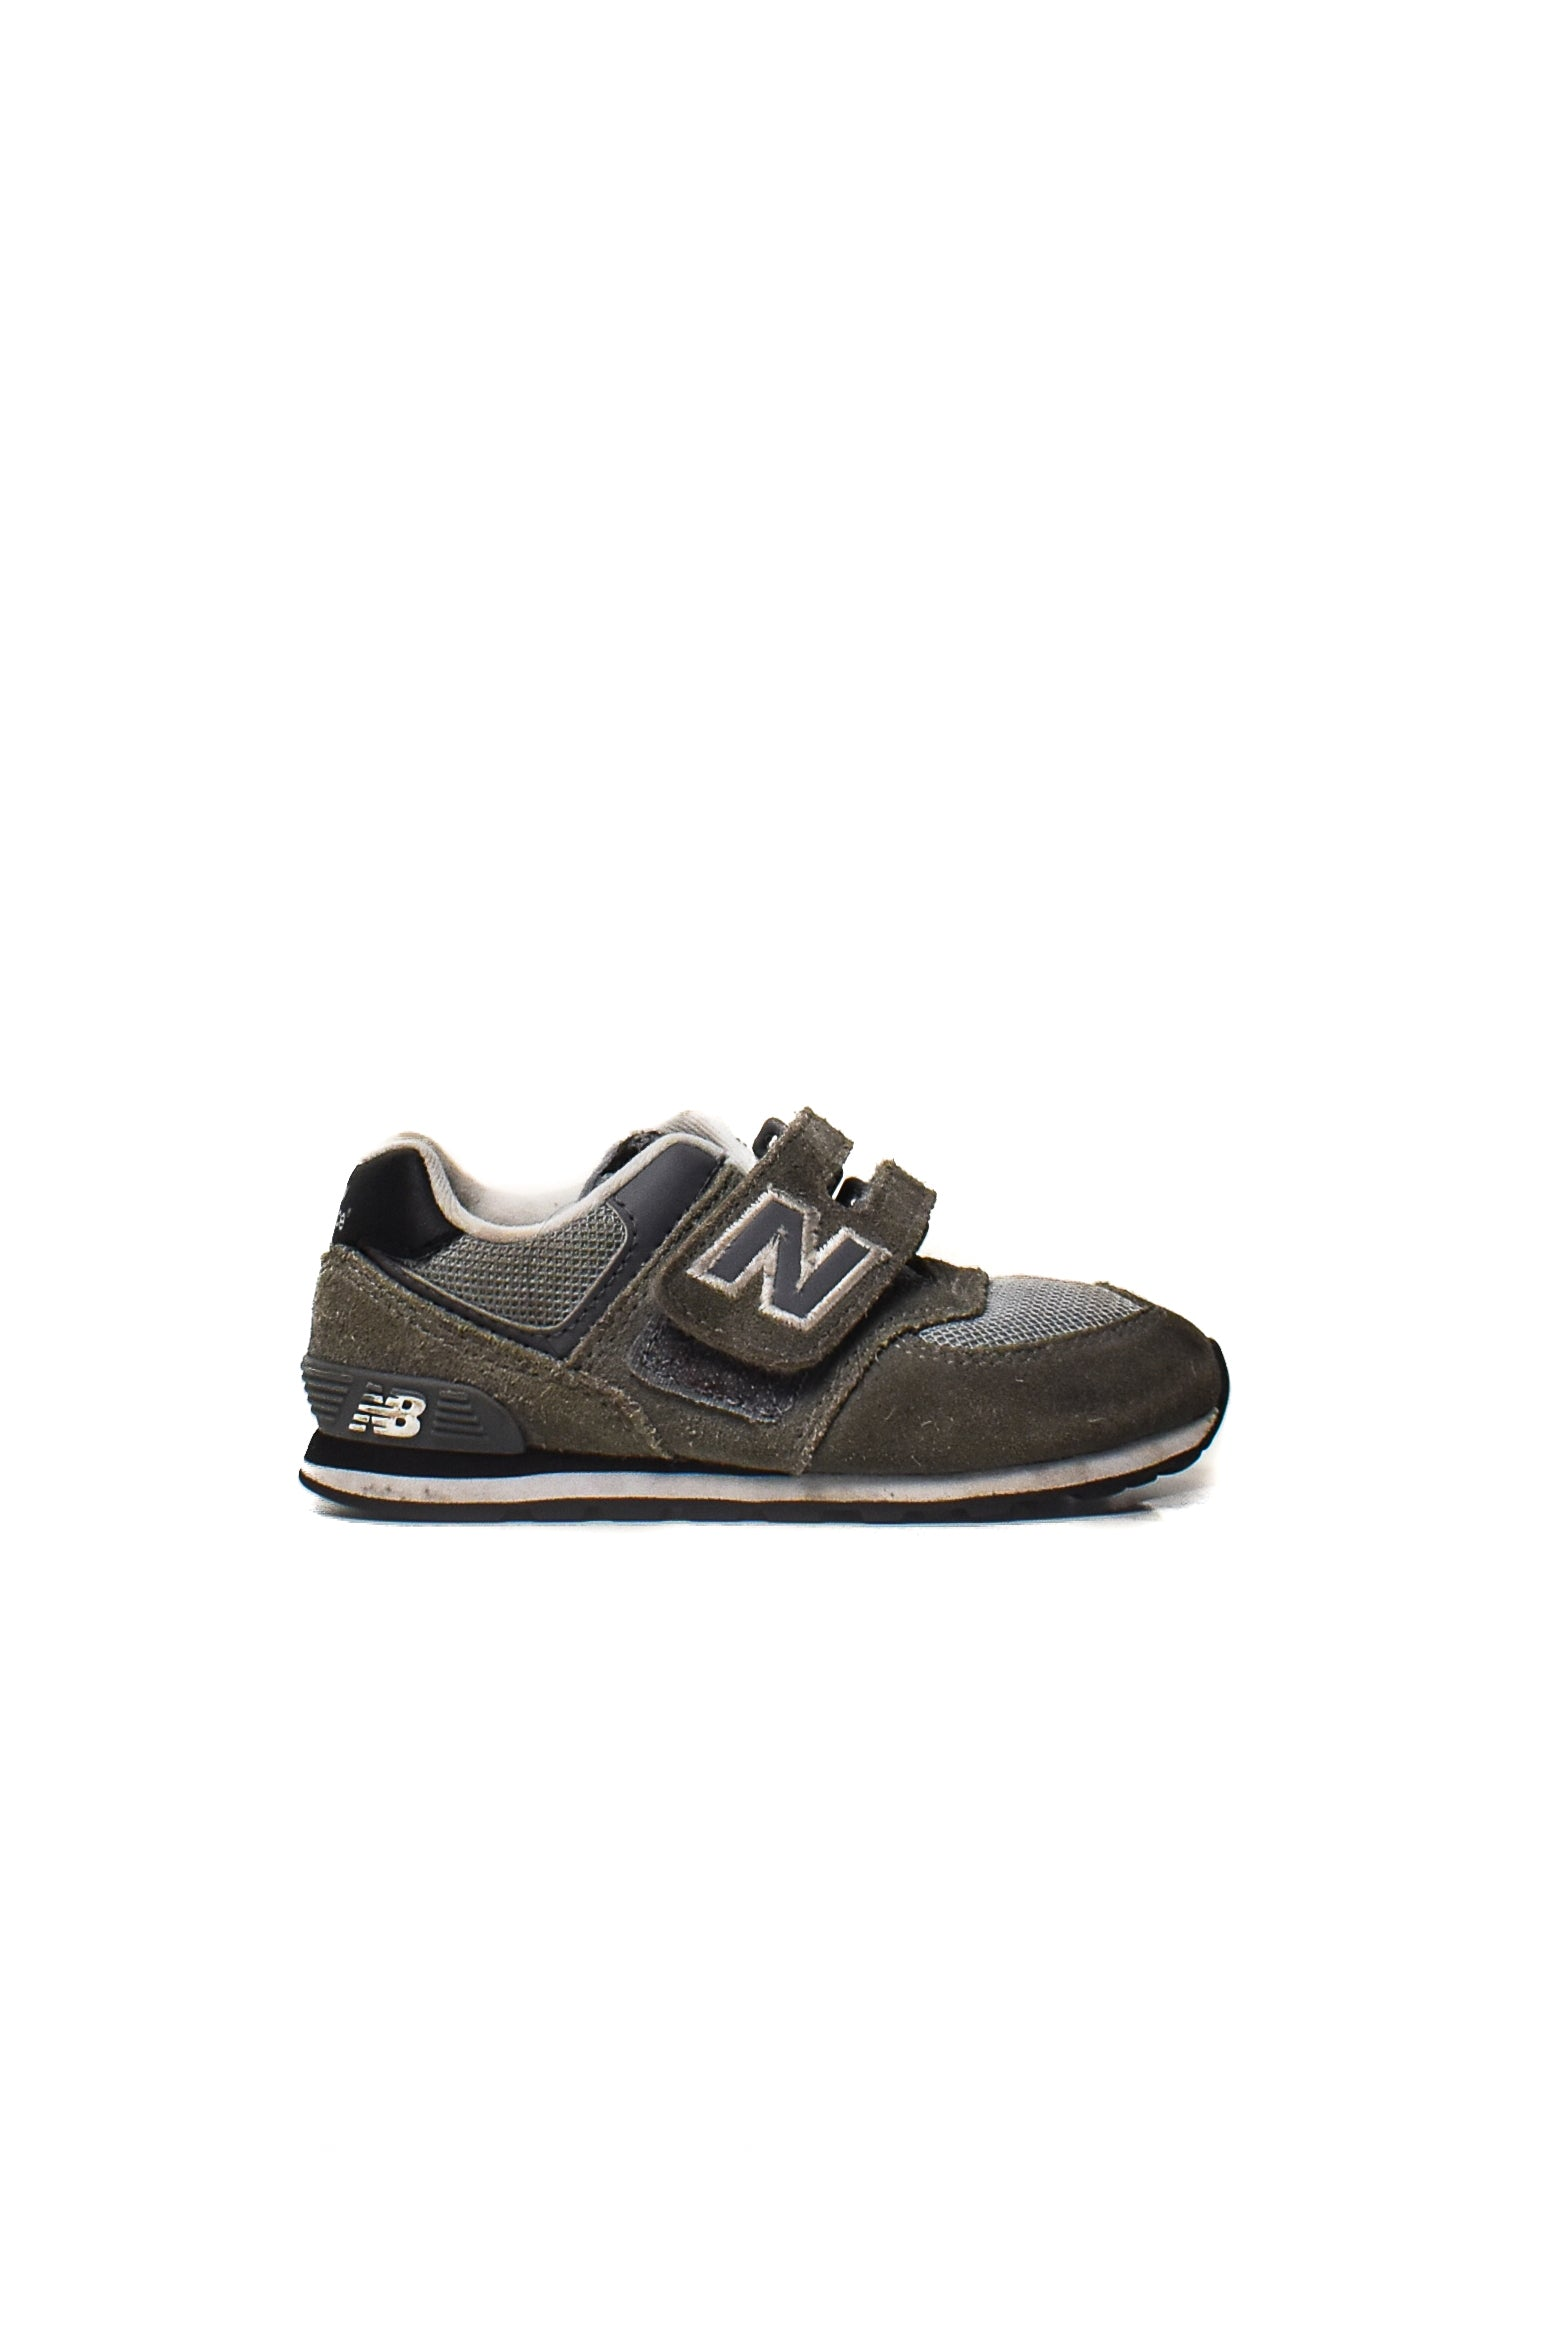 10006953 New Balance Baby~ Shoes EU 22.5 at Retykle